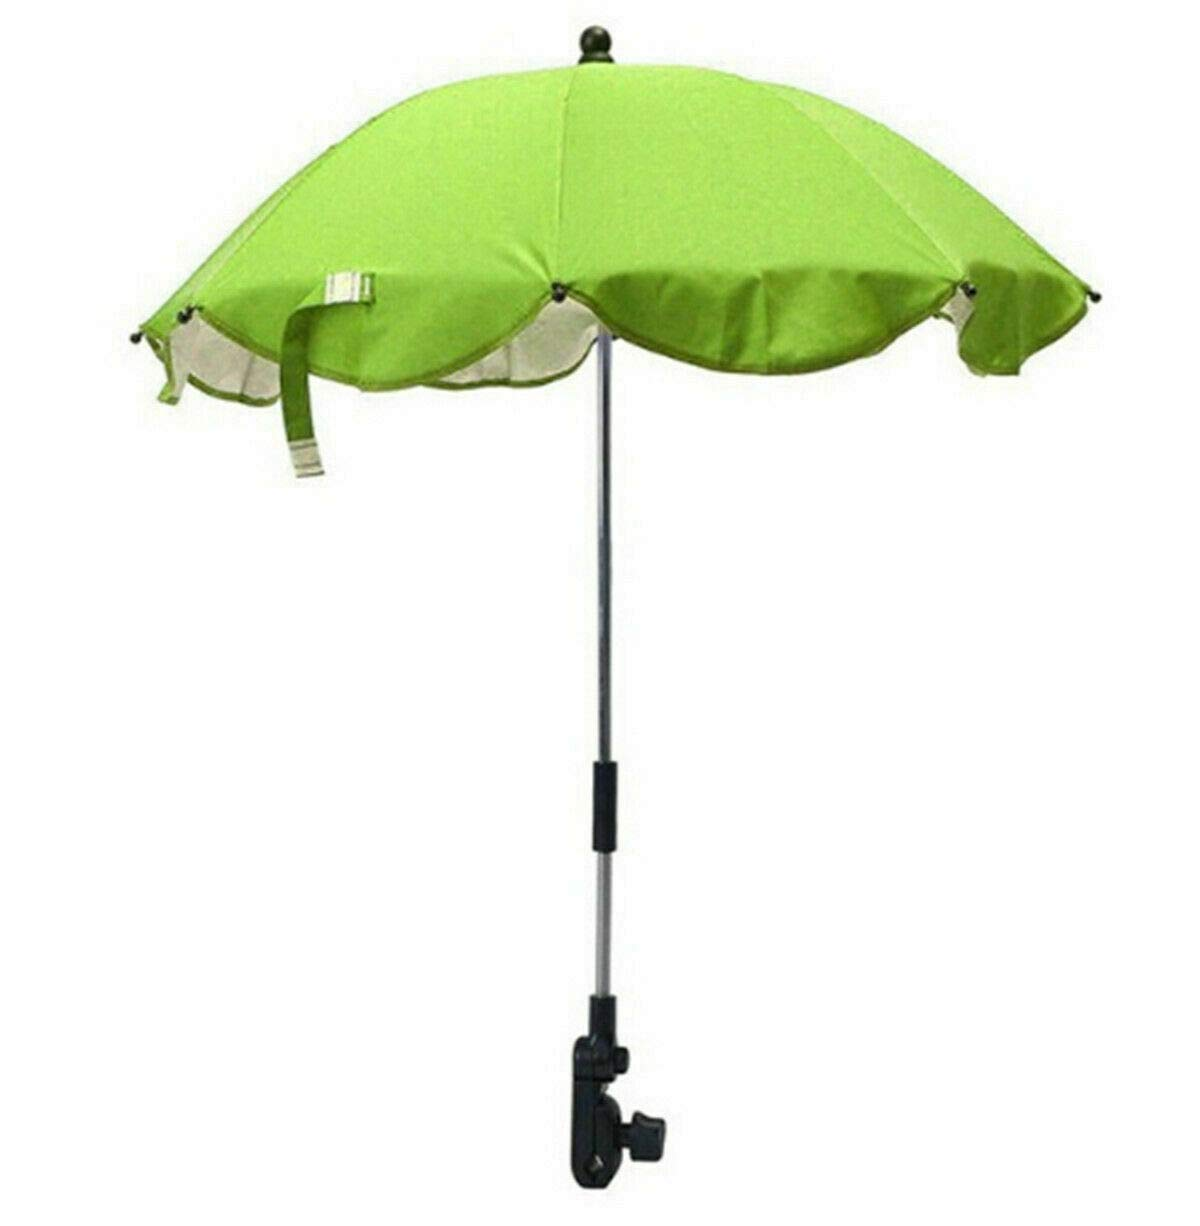 Global Supplies Present Flexible Baby Sun Umbrella Parasol Buggy Pushchair Shade in Green